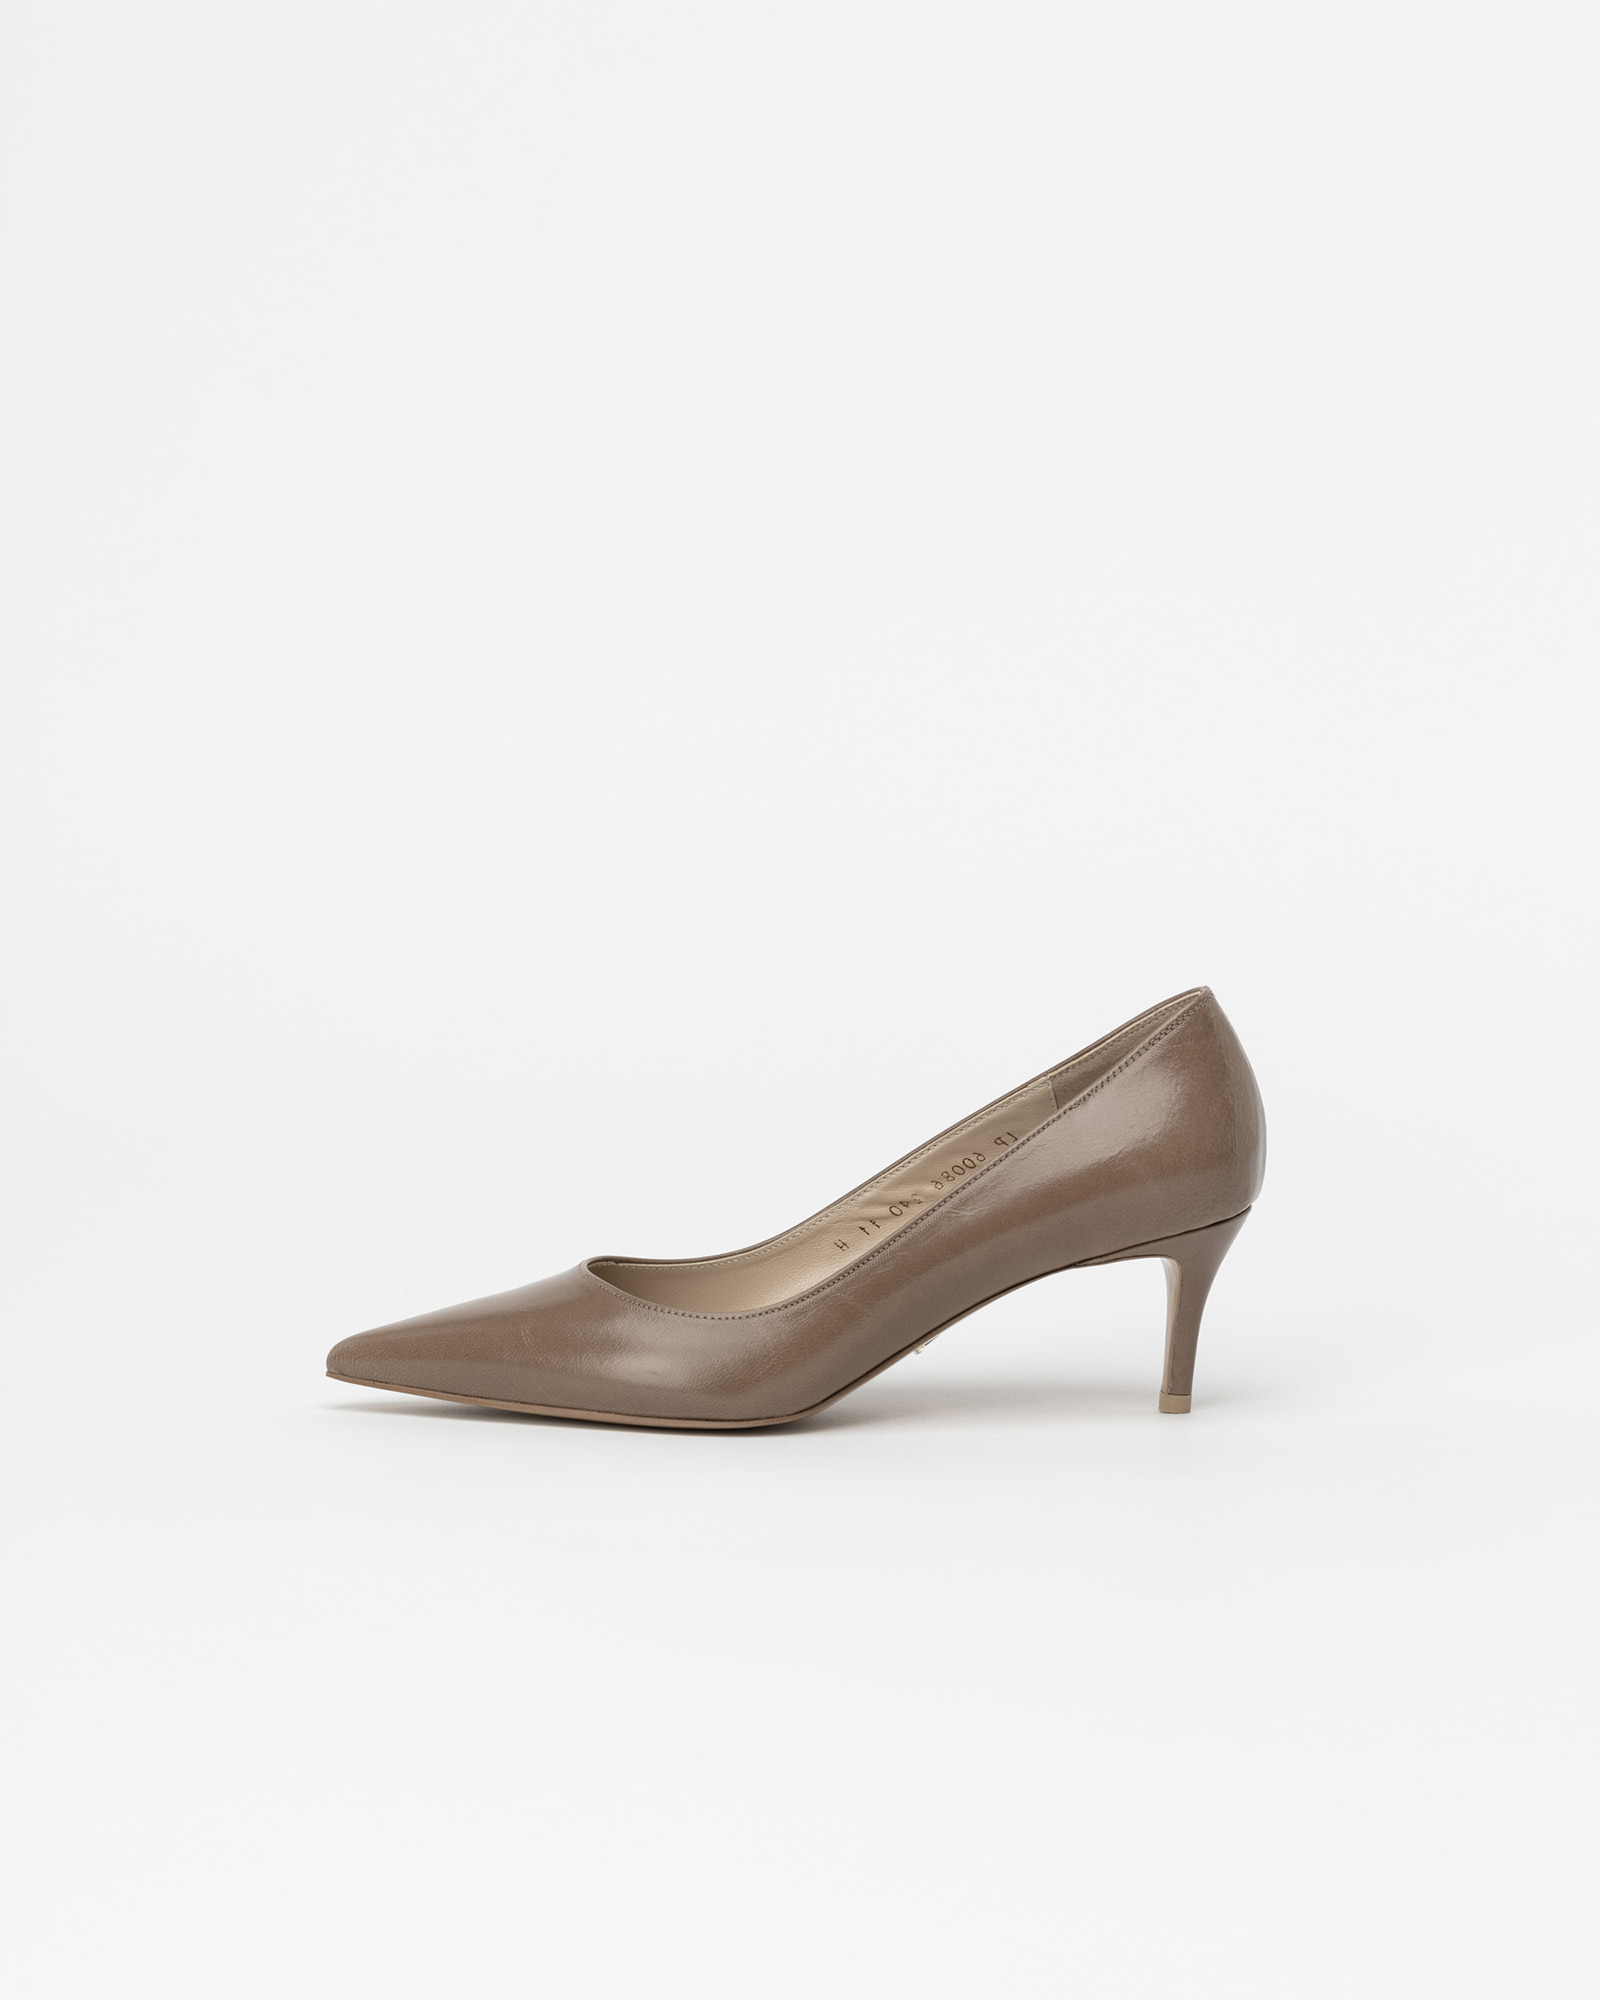 Chauffeur Stiletto Pumps in Textured Cocoa Brown